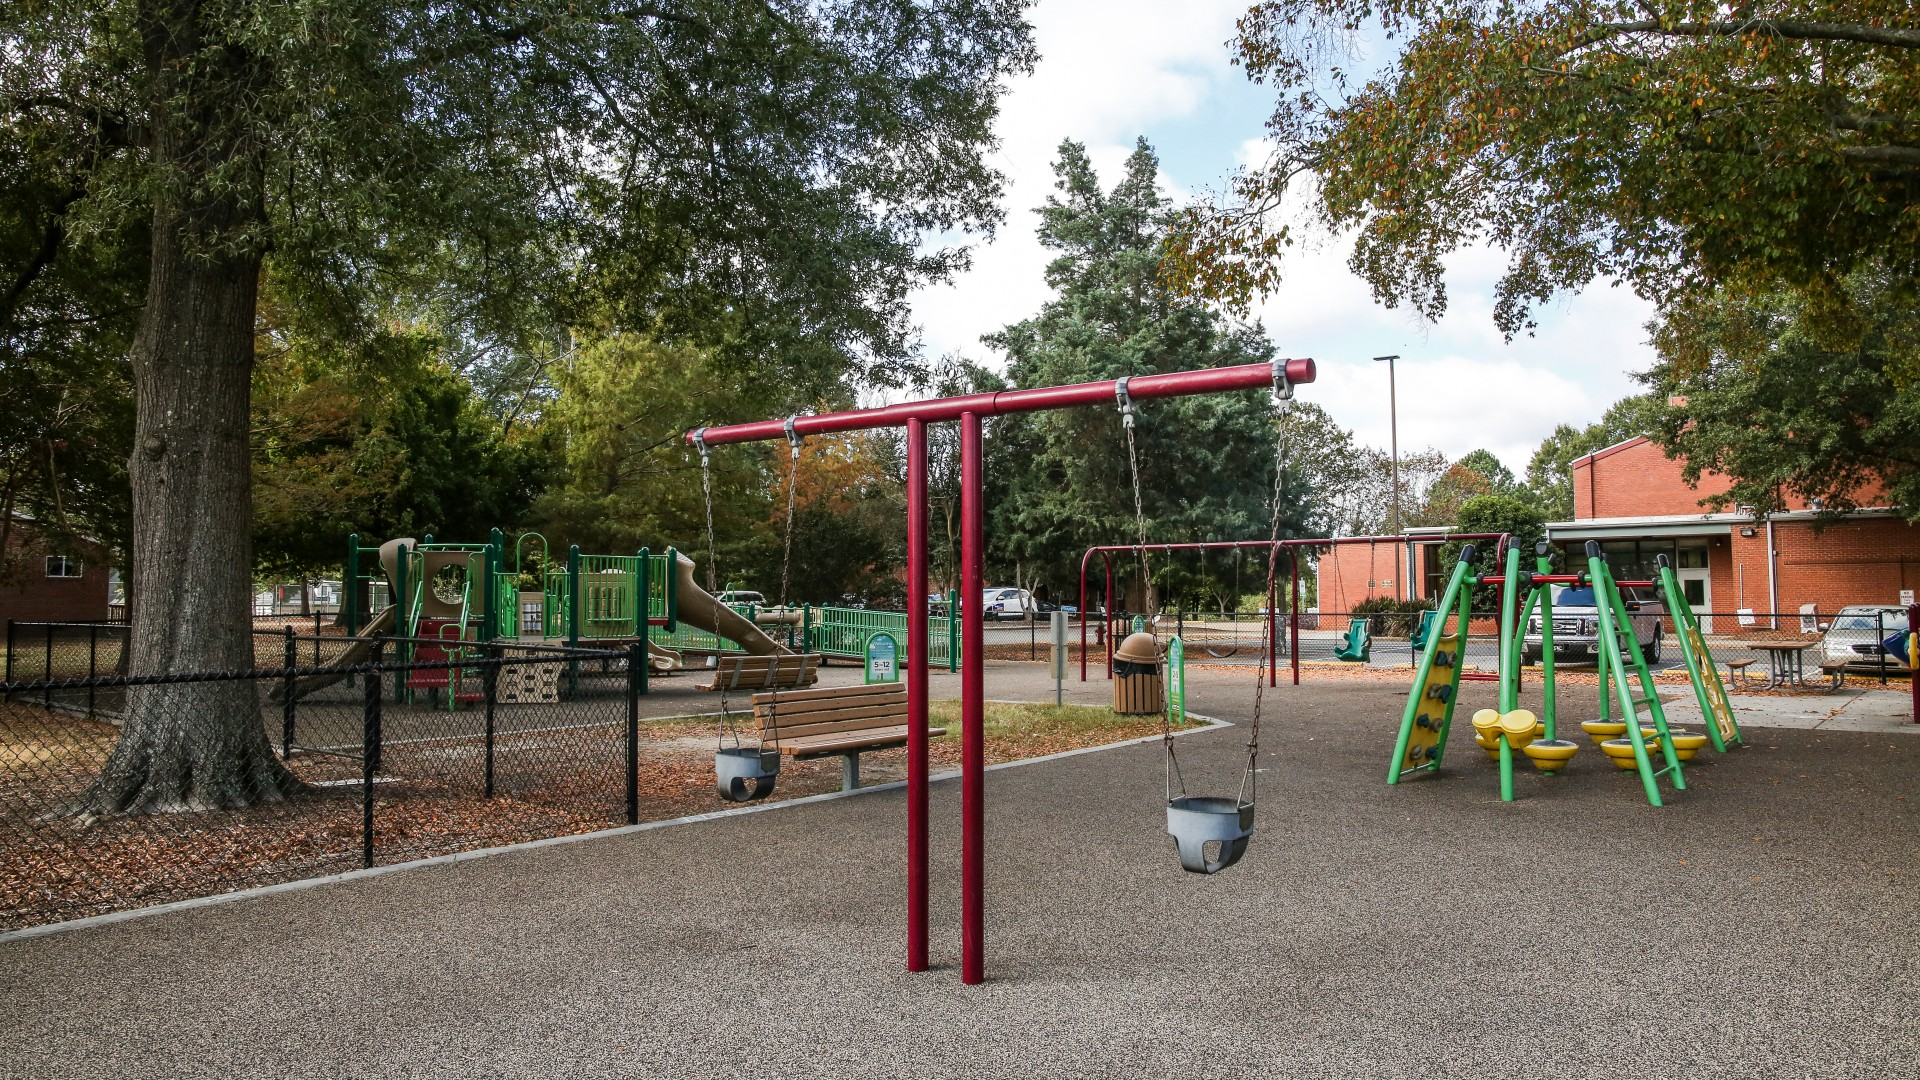 A playground at Method Road Park with swings, slides, climbing equipment and more